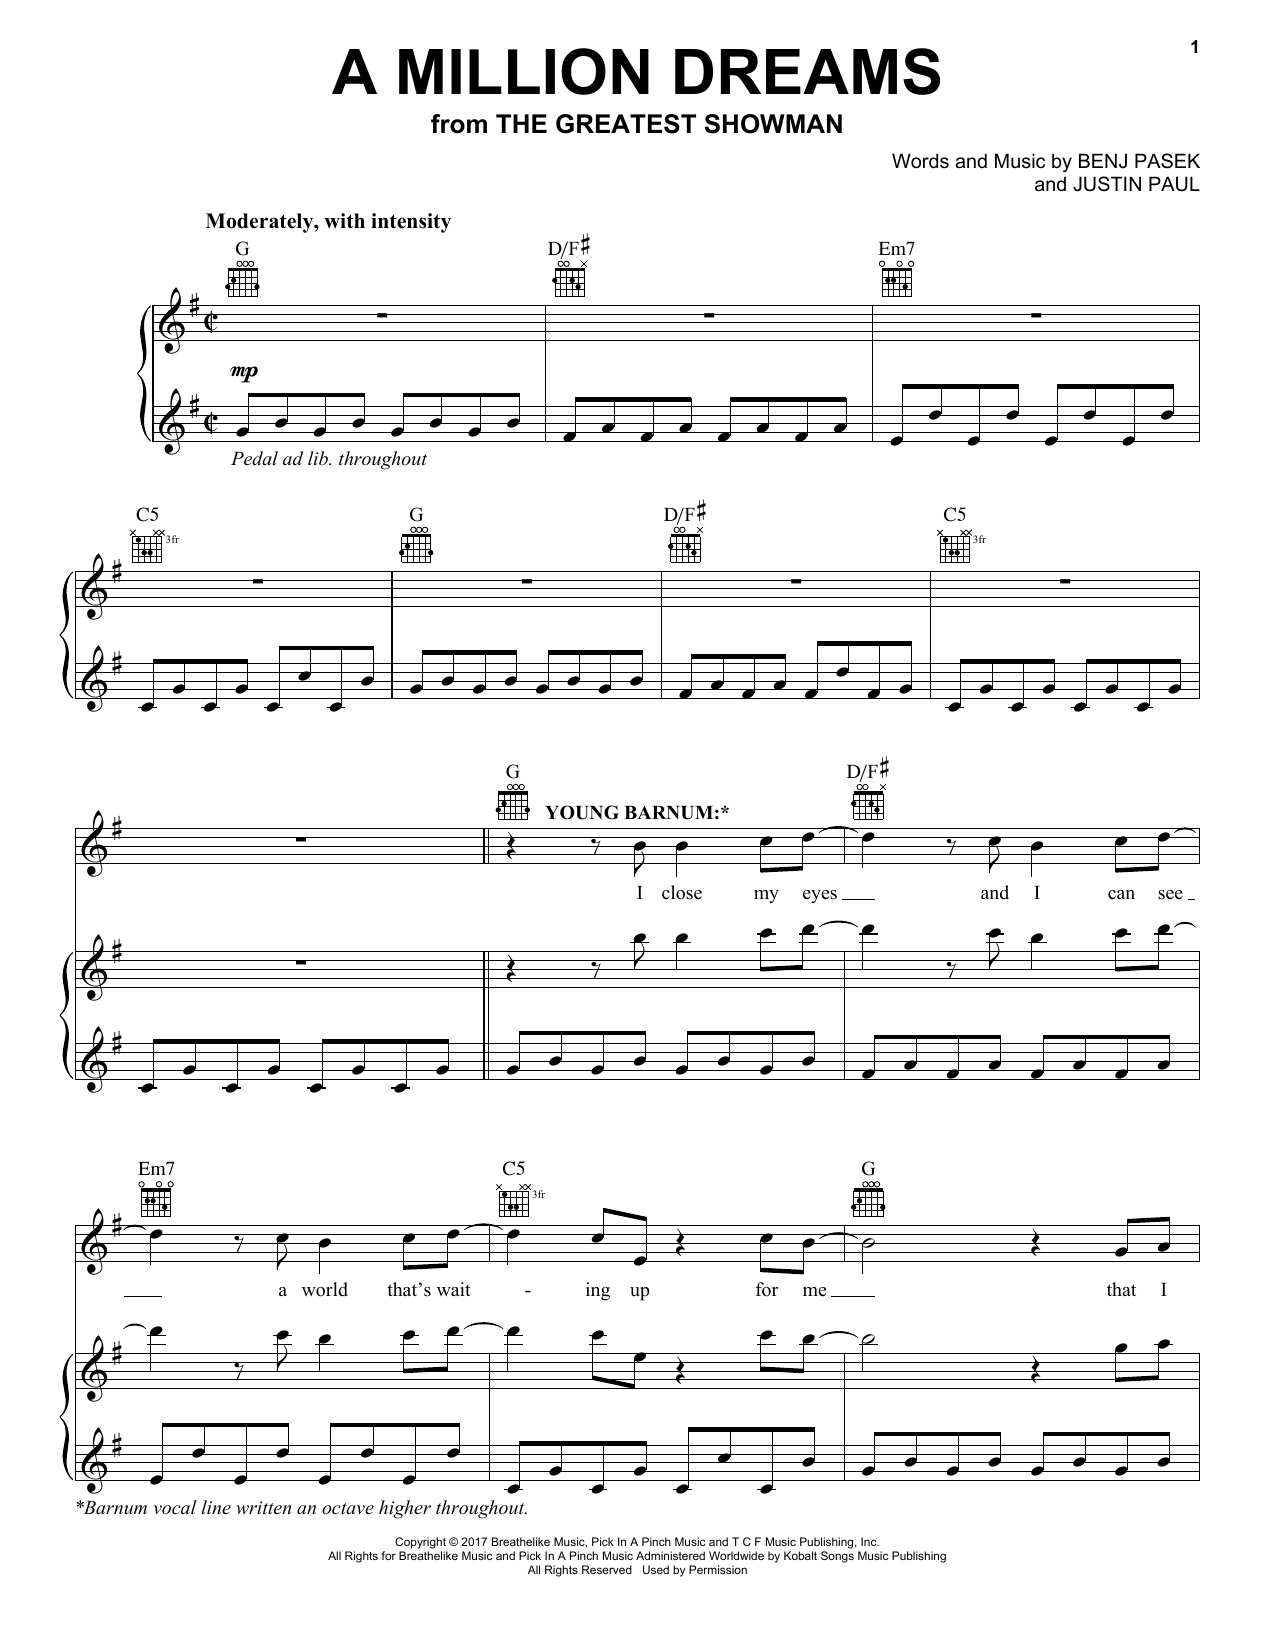 Pasek Paul A Million Dreams From The Greatest Showman Sheet Music Notes Chords Download Printable Piano Vocal Guitar Right Hand Melody